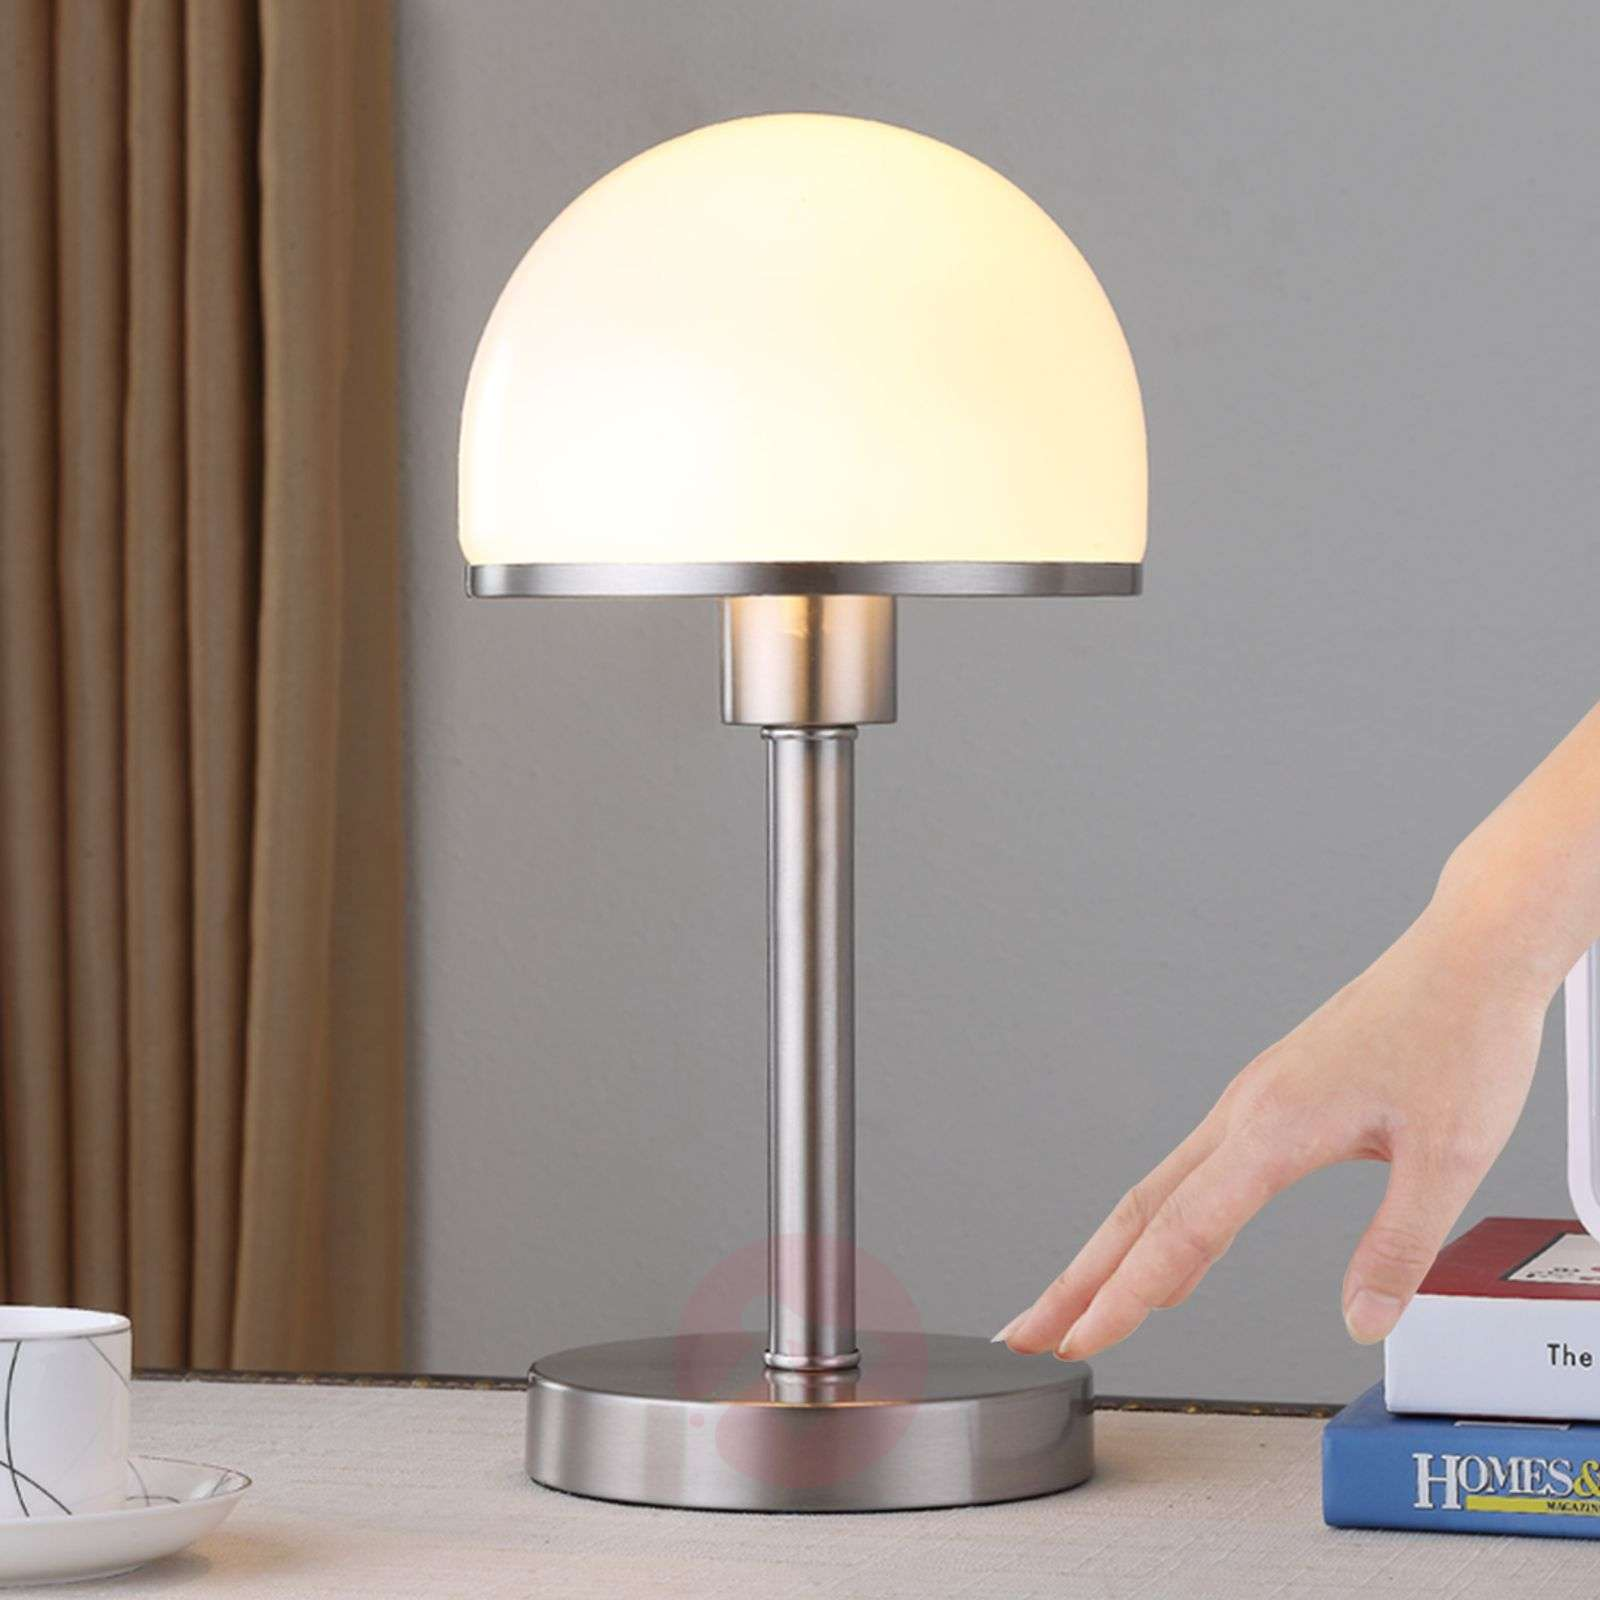 Stylish table lamp Jolie with glass lampshade-9620812-01